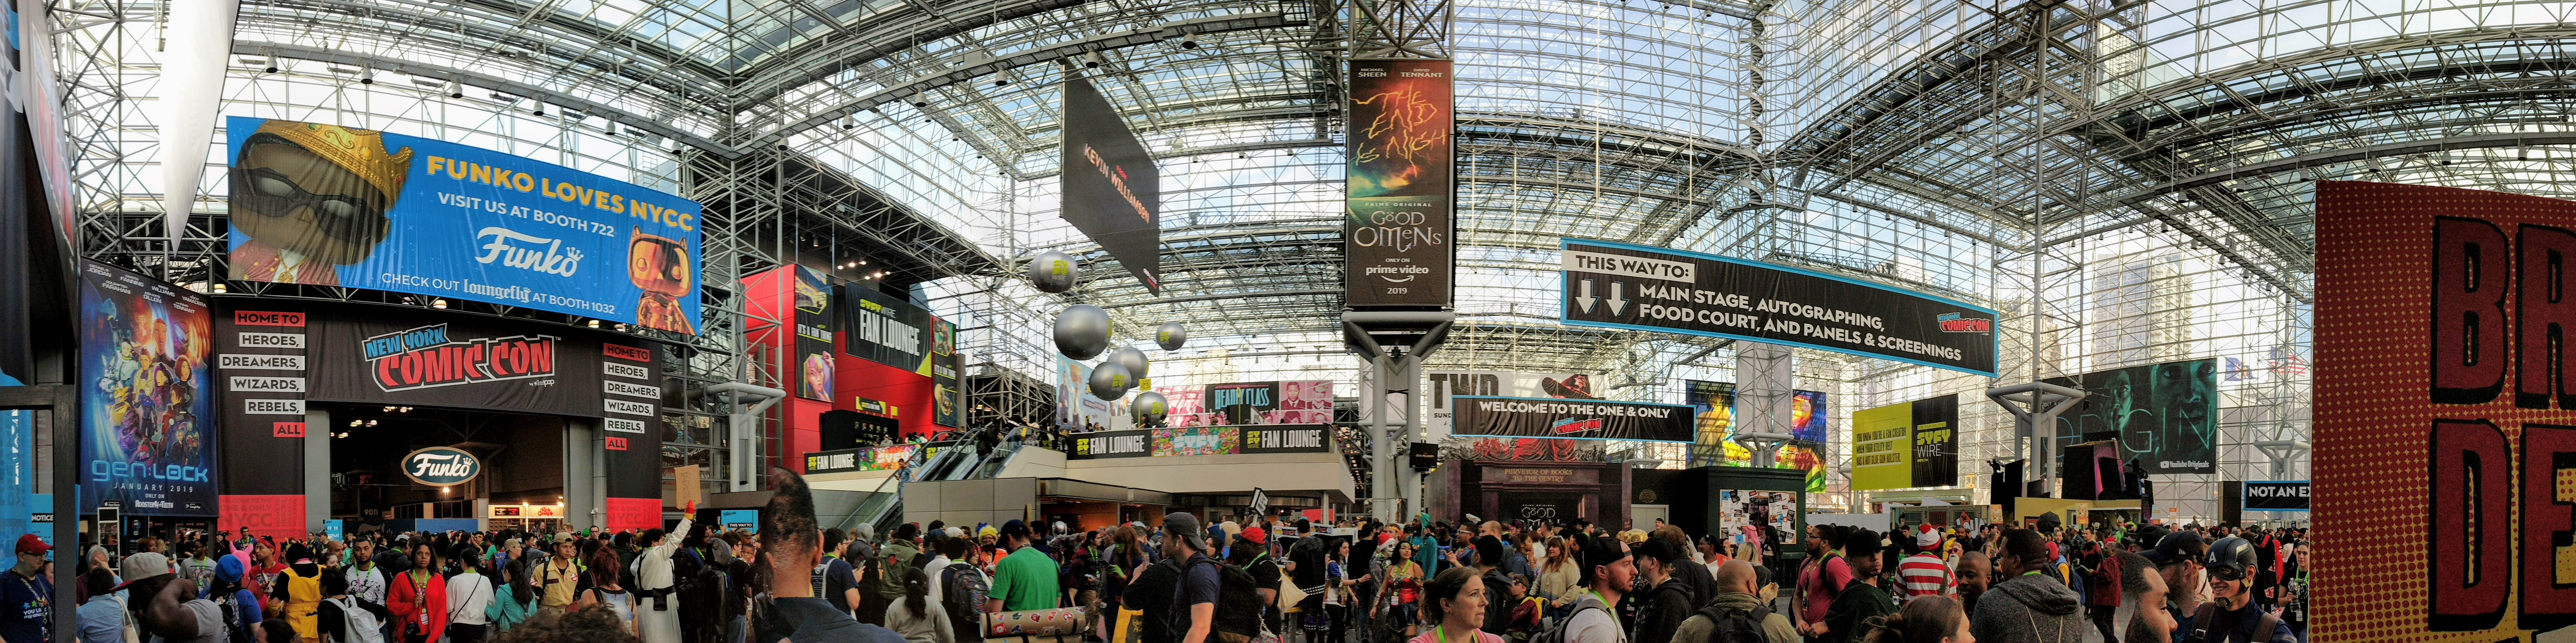 New York Comic Con 2018: Get your geek on! – The Gadgeteer